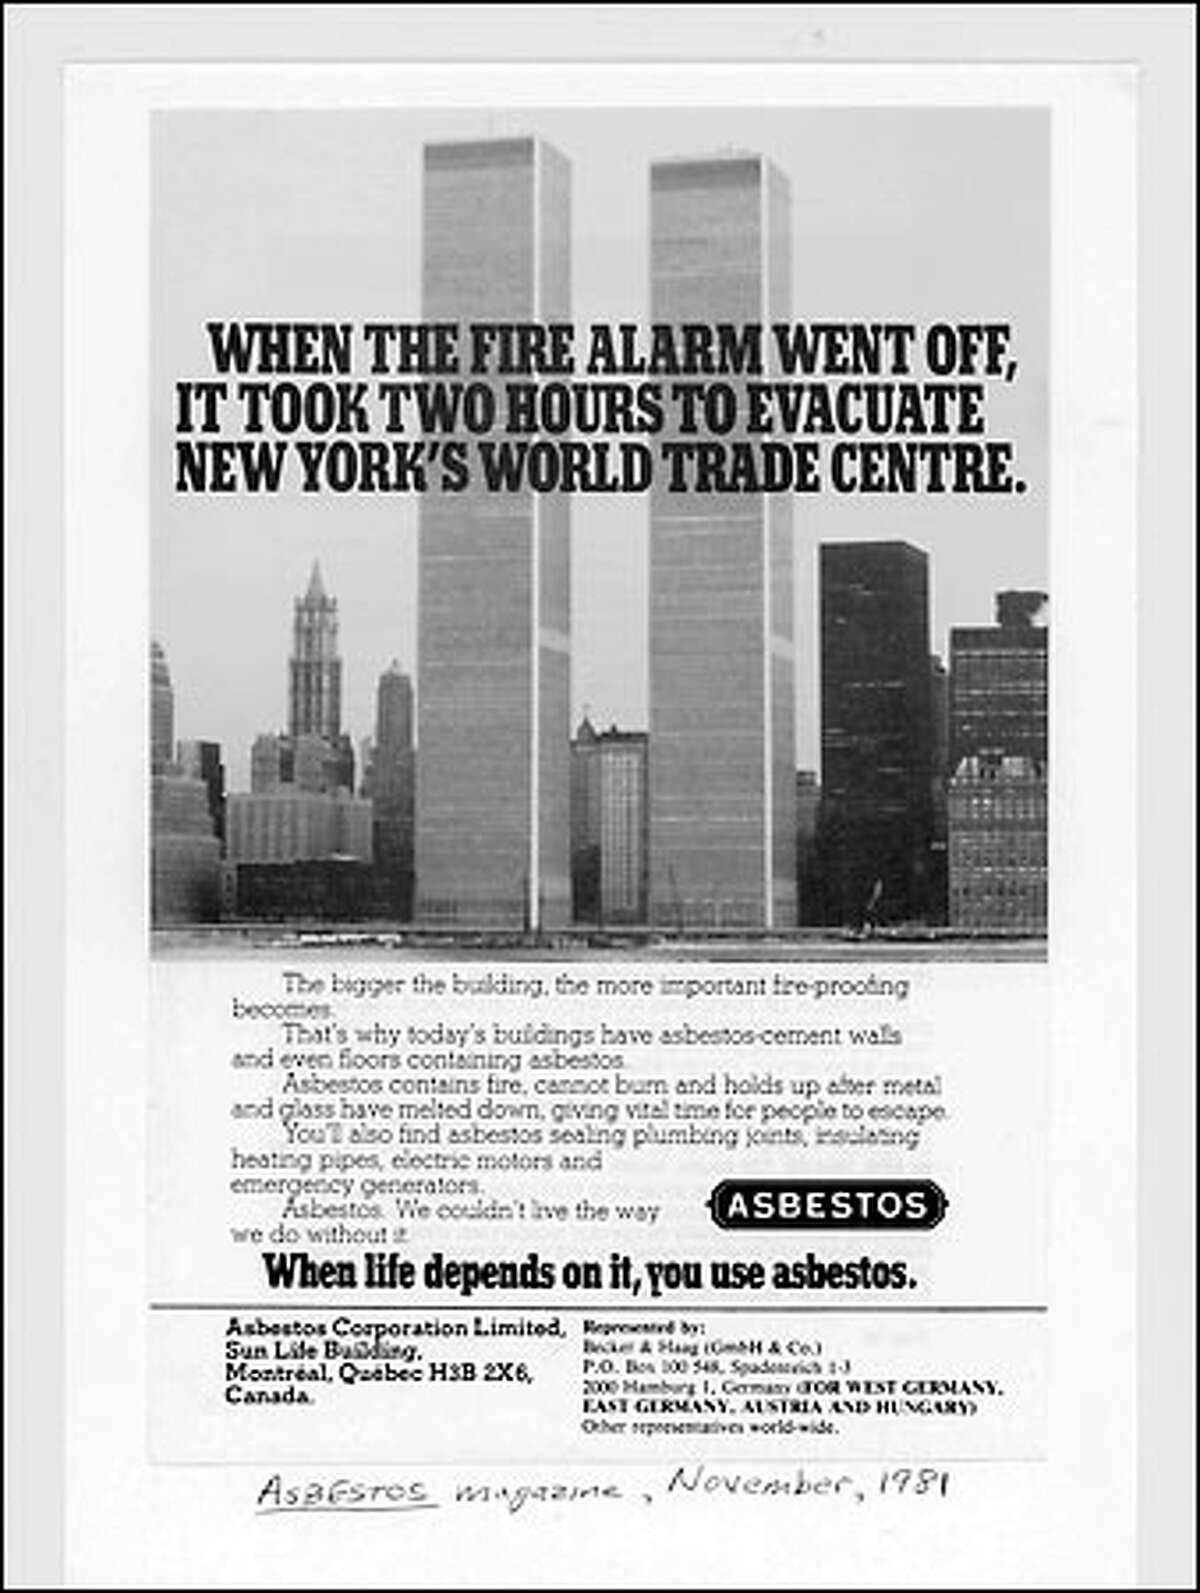 This 1981 advertisement in Asbestos Magazine, an industry publication, lauded the use of asbestos in the construction of the World Trade Center.